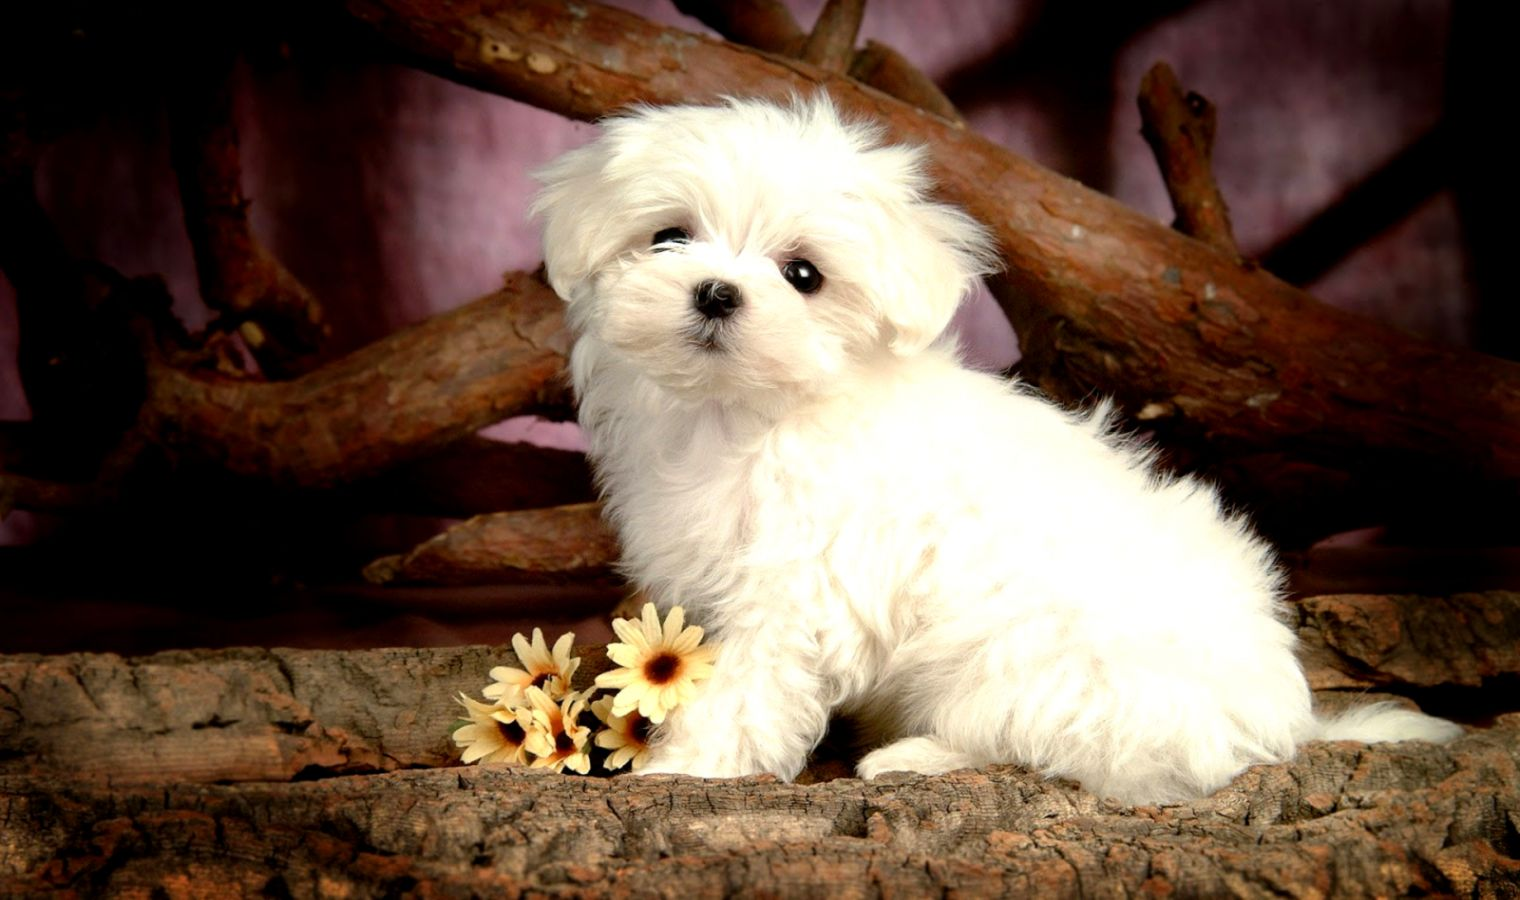 Cute Dogs Wallpaper Puppy The Last Wallpapers